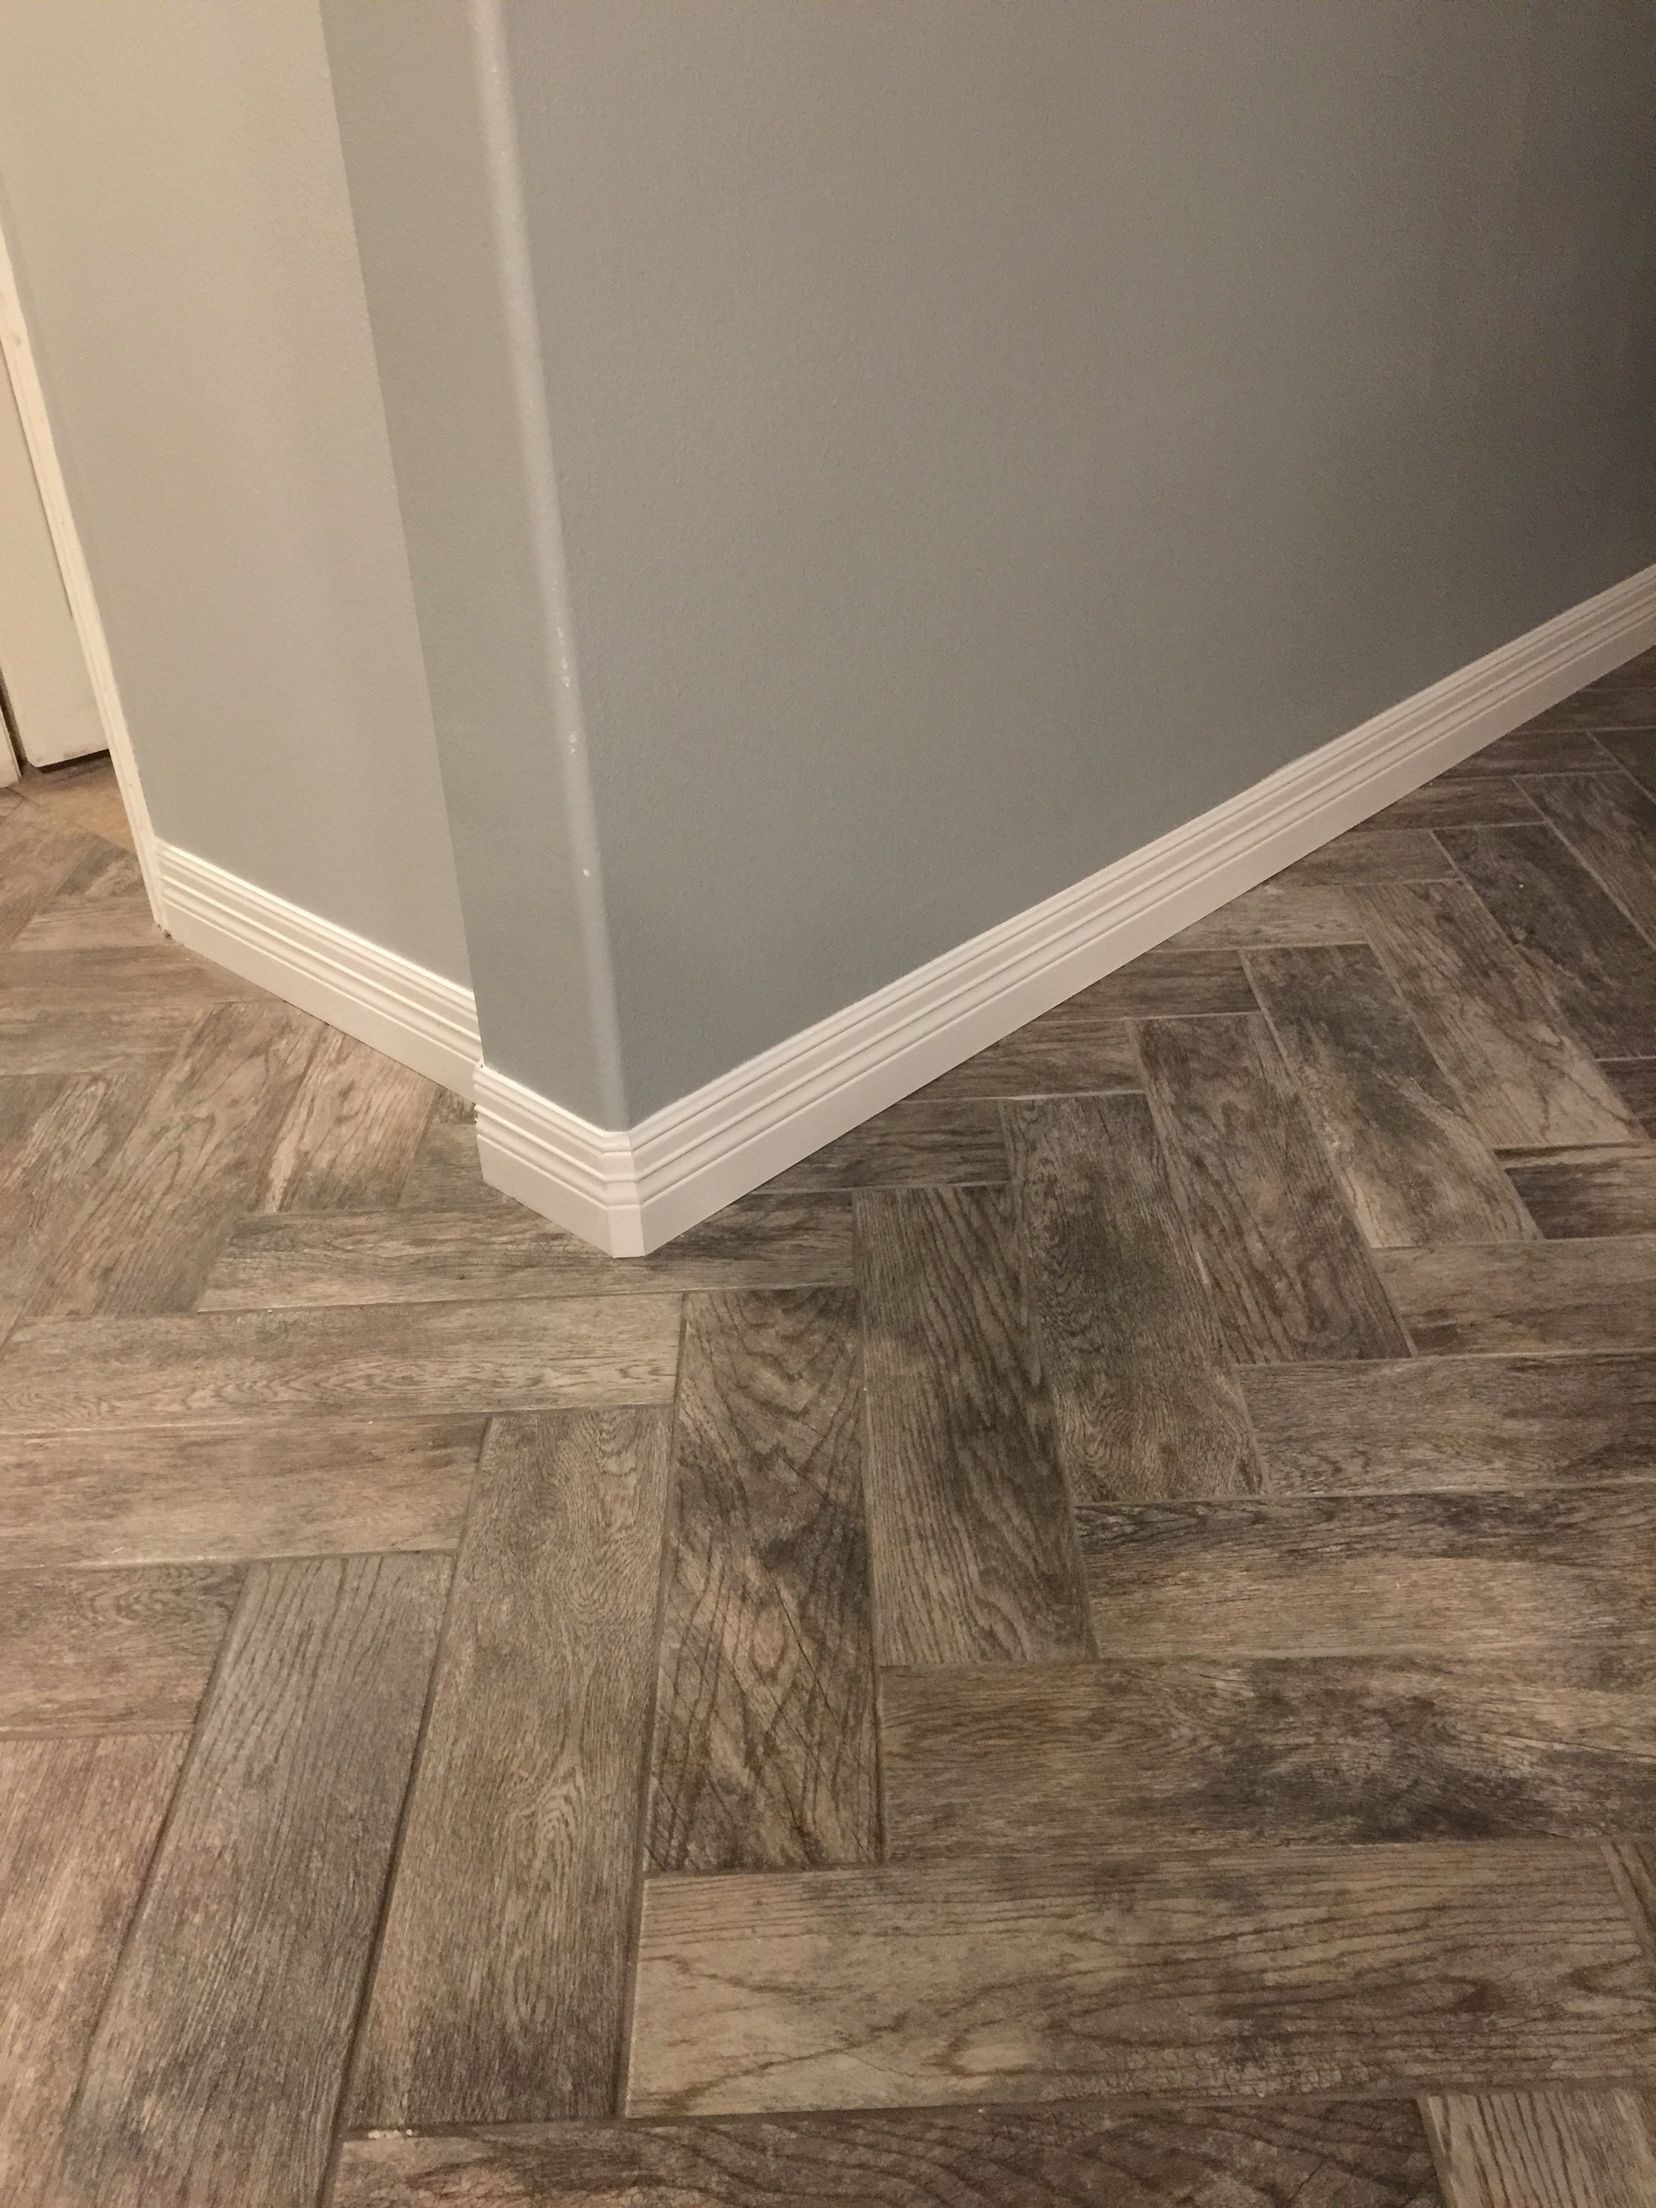 hardwood flooring nails home depot of tile plank floor from home depot rustic bay looks great with within tile plank floor from home depot rustic bay looks great with herringbone layout and